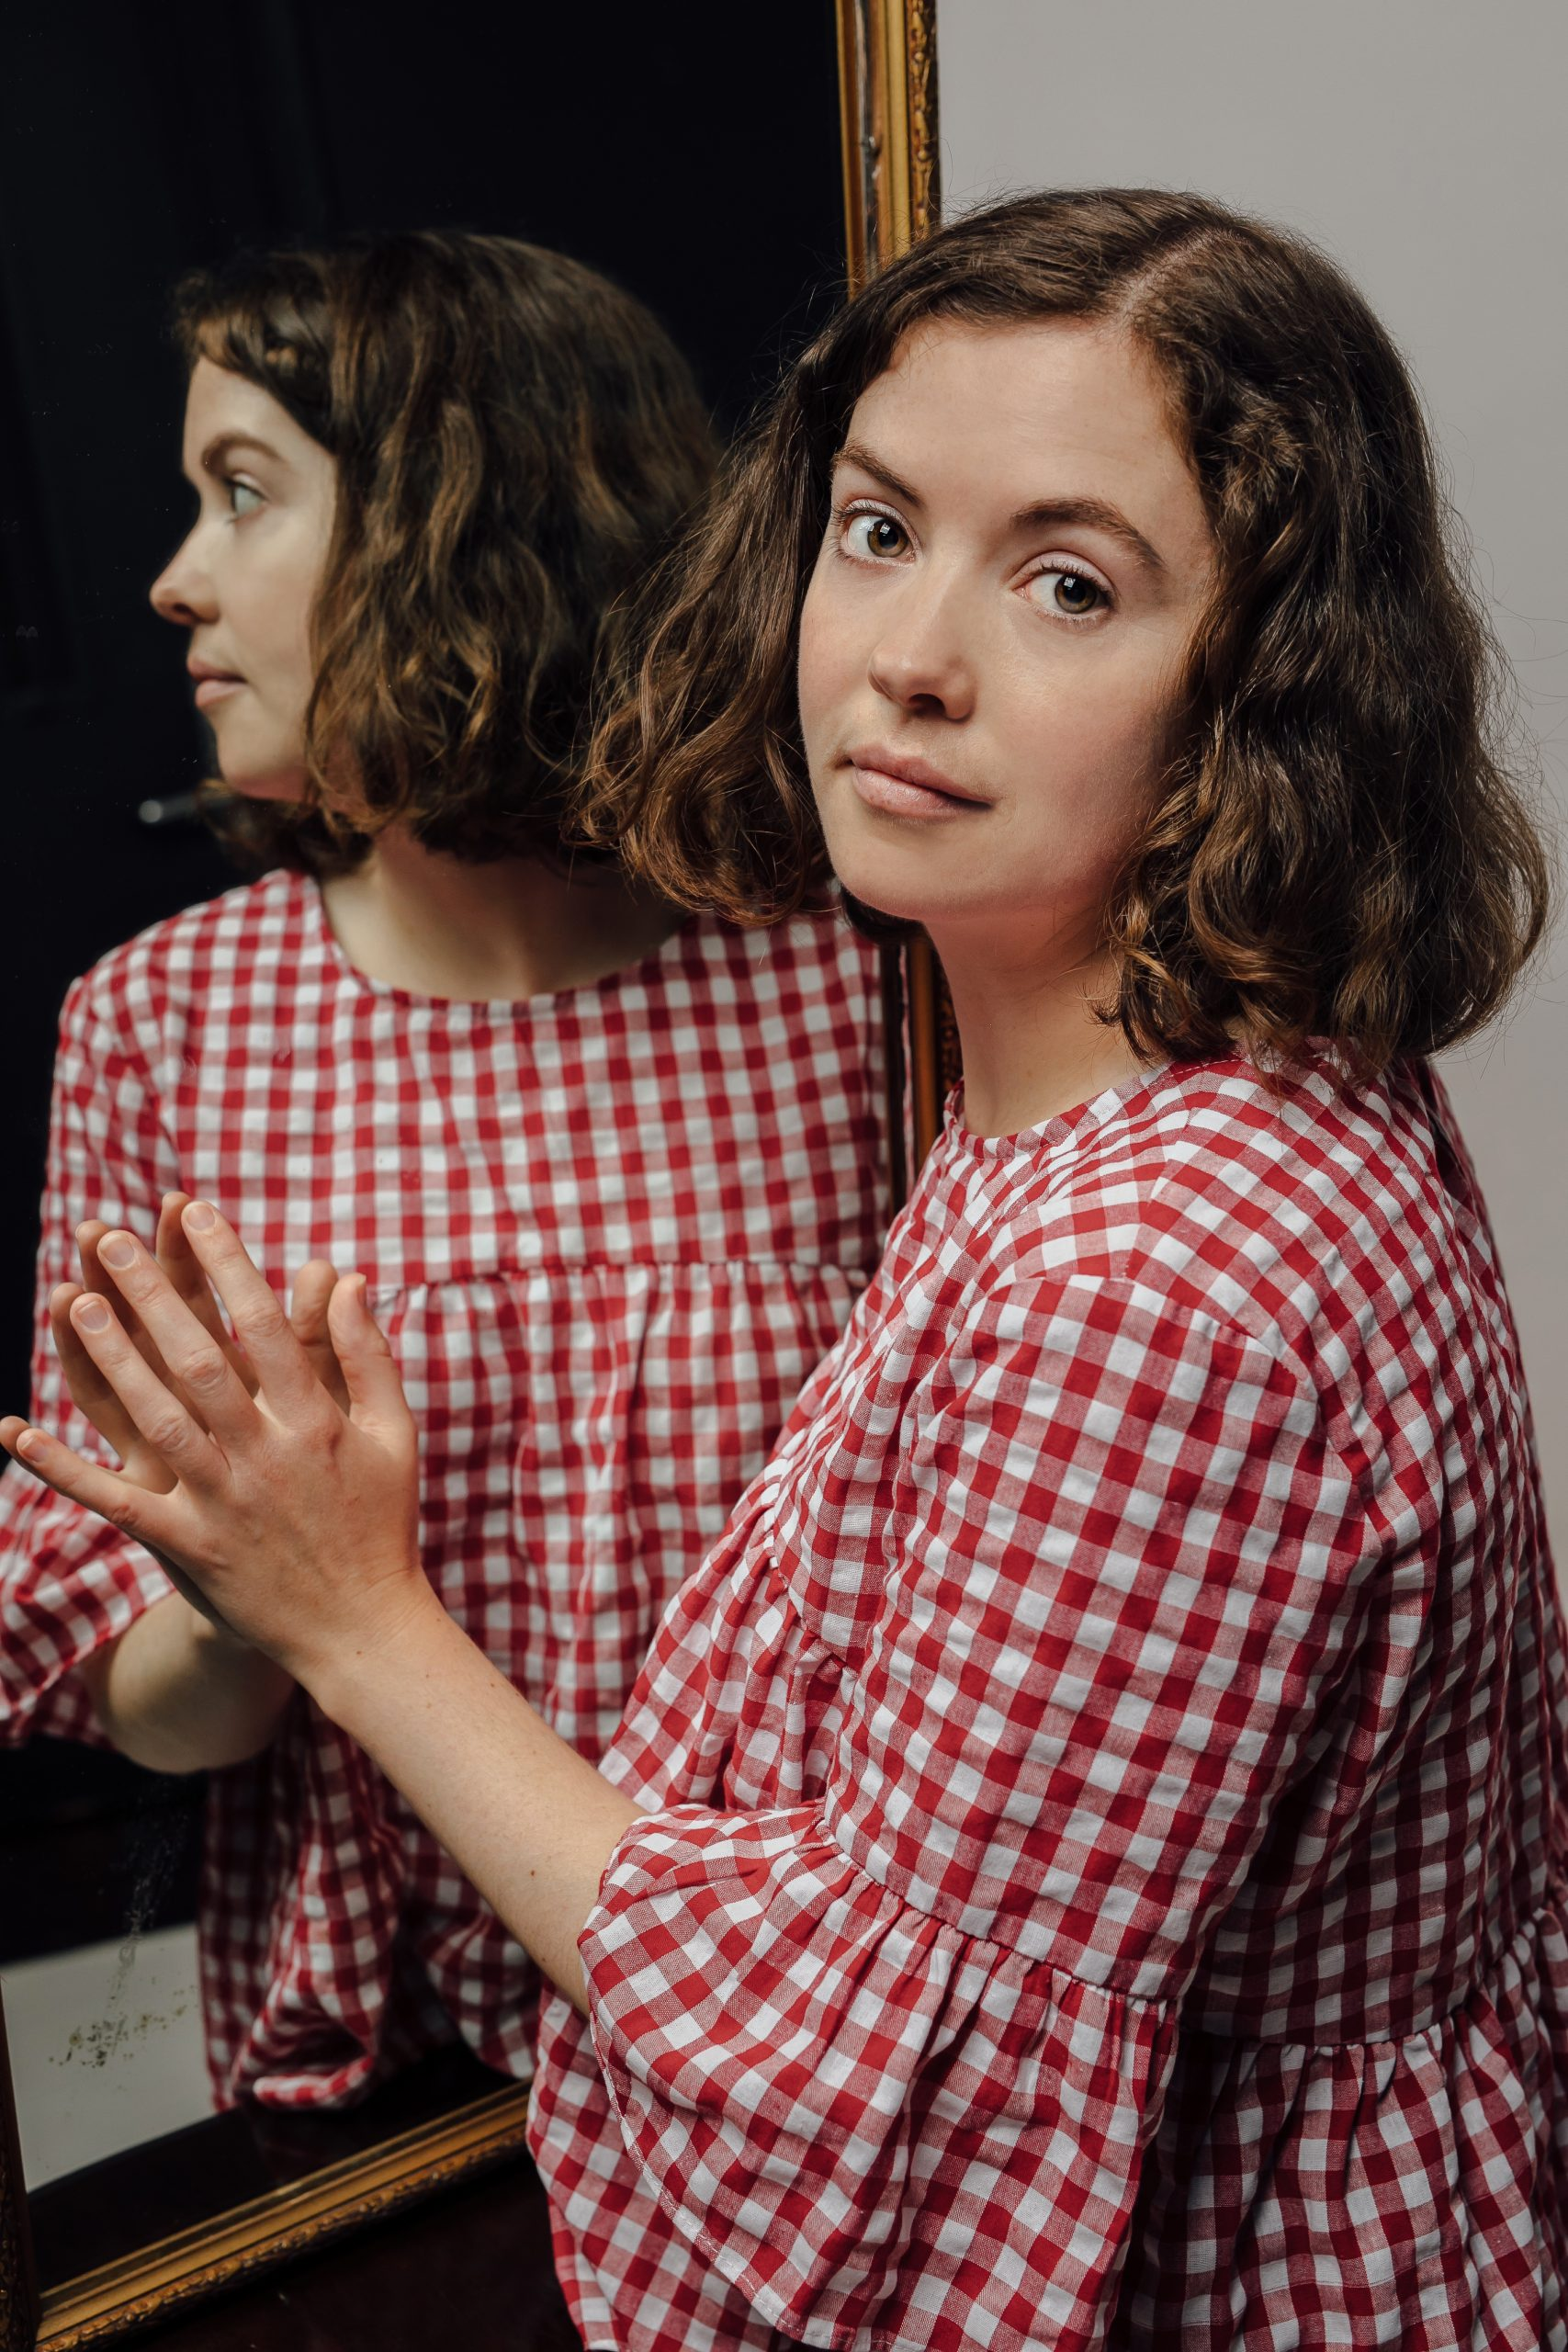 Clare as an adult reflected in a mirror wearing a red and white gingham top